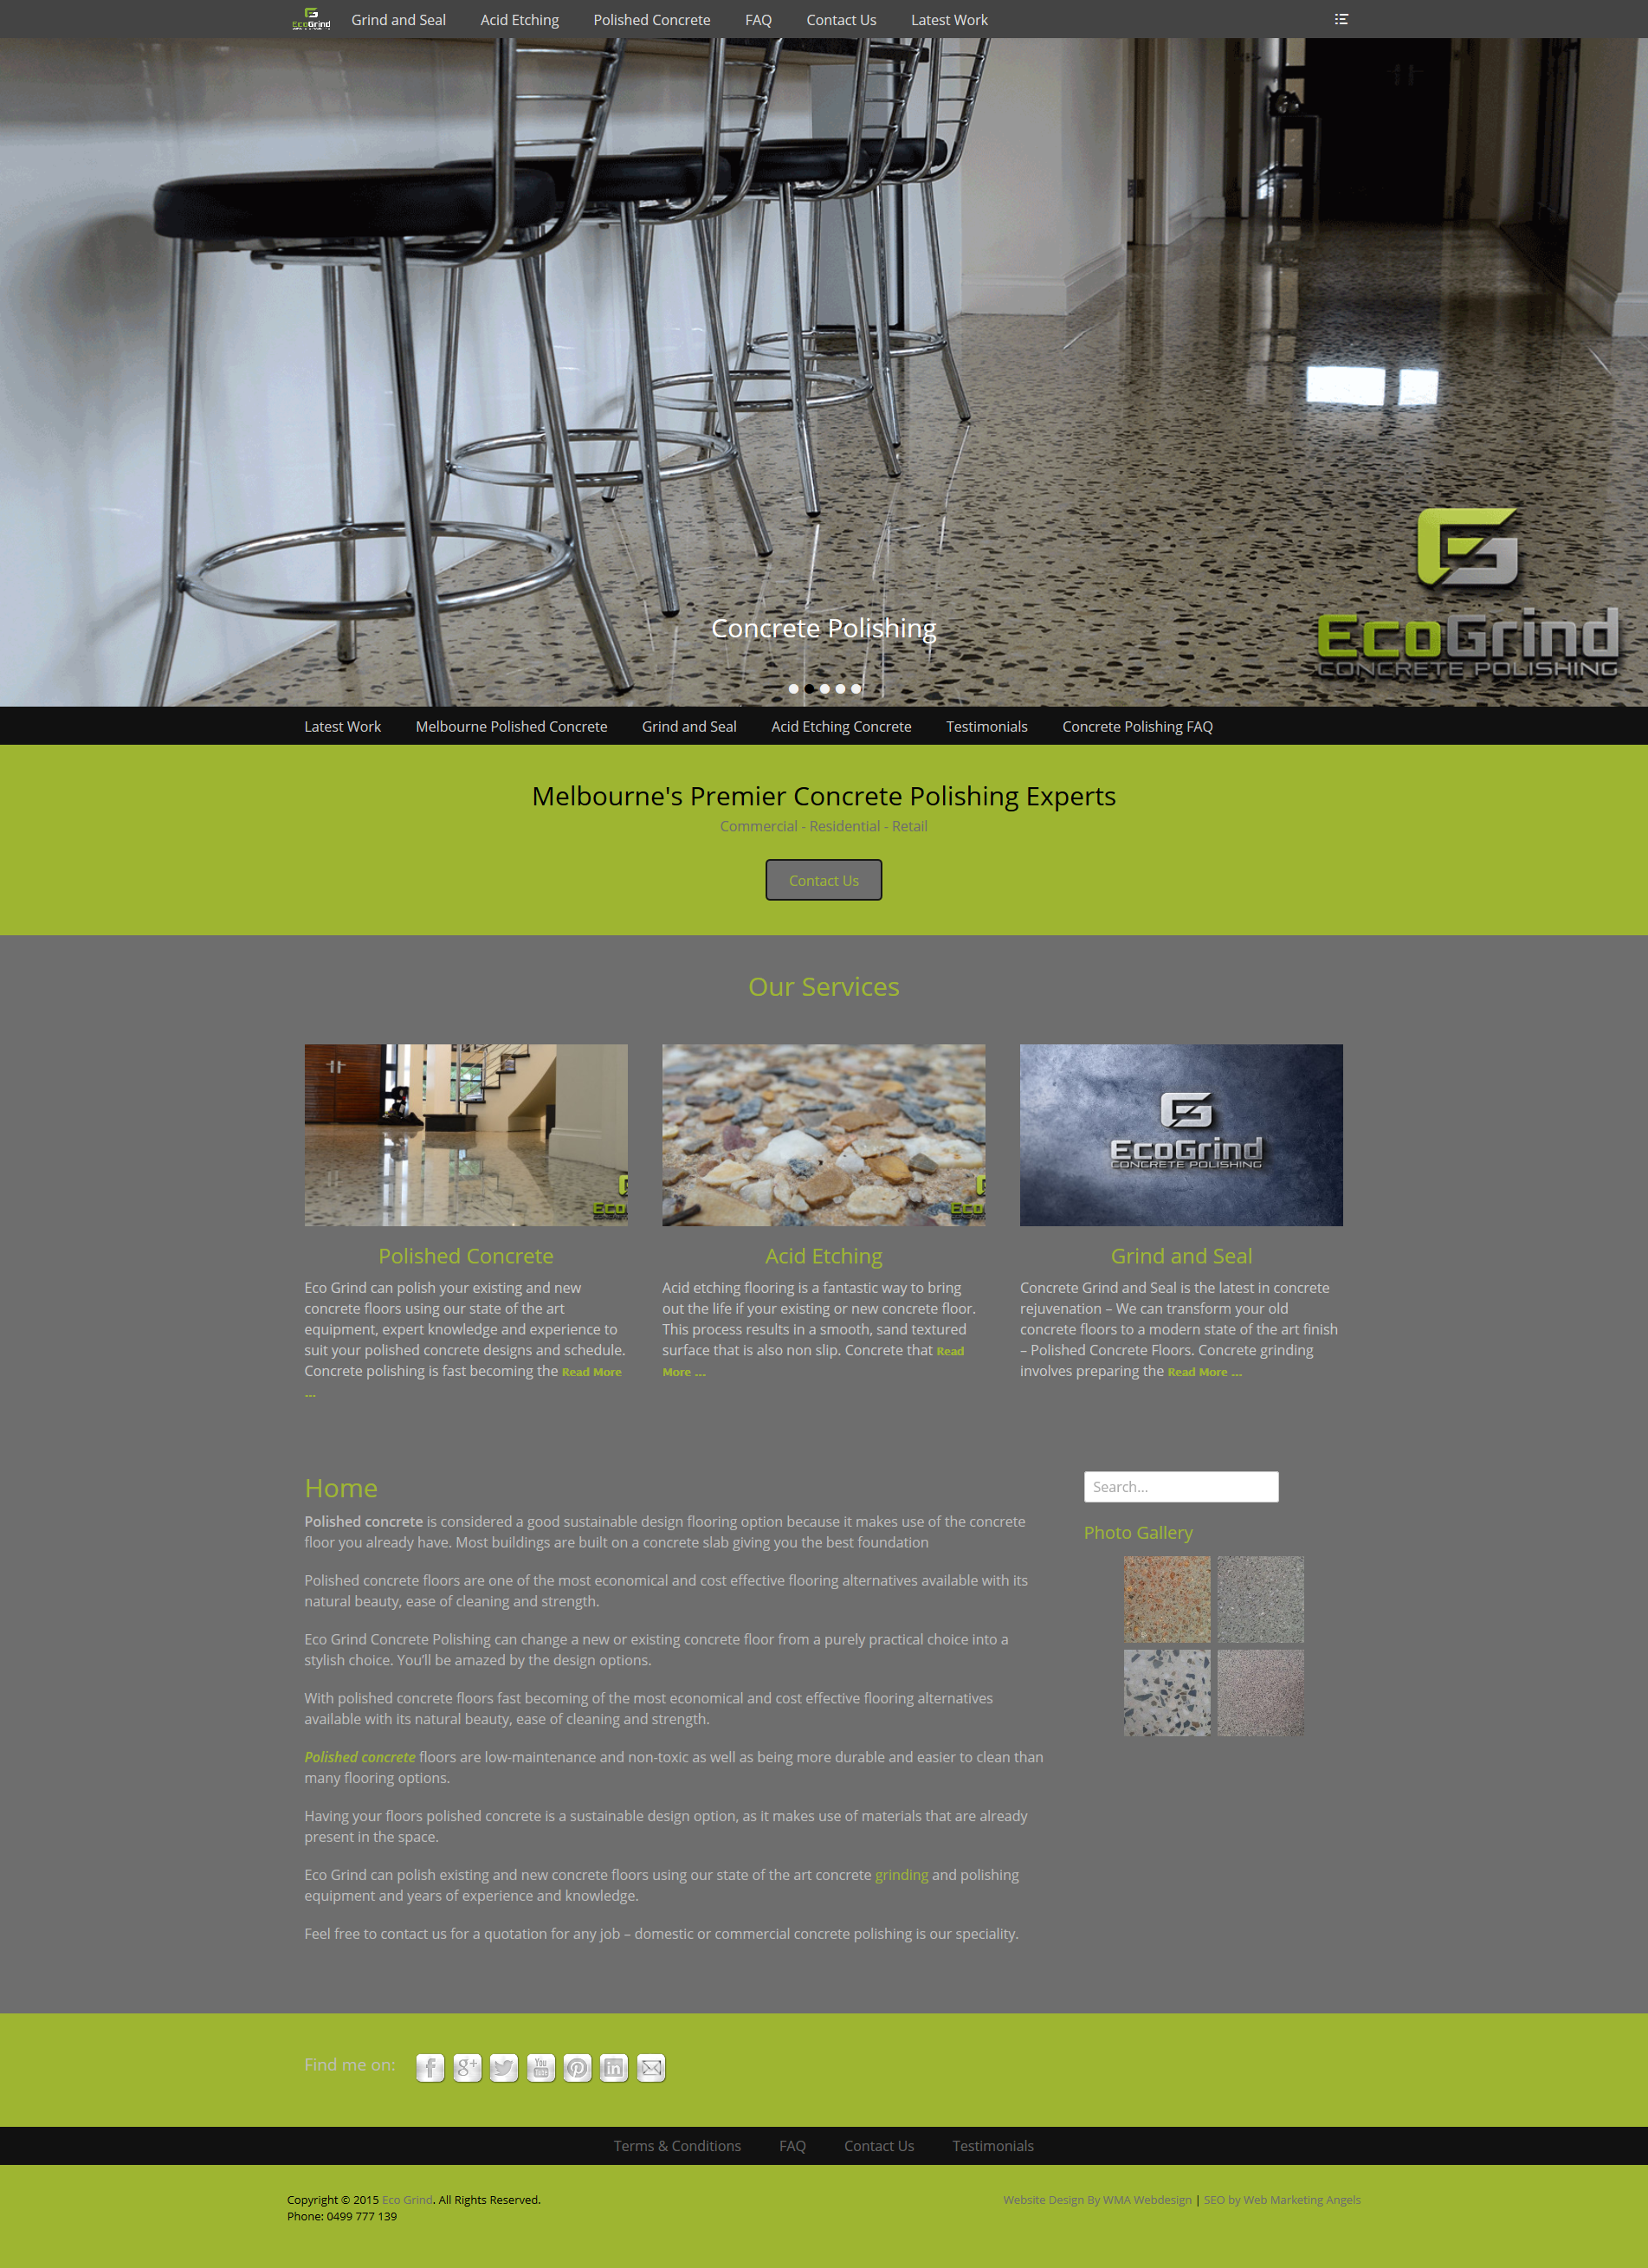 Lyndhurst Web Design – Eco Grind Website